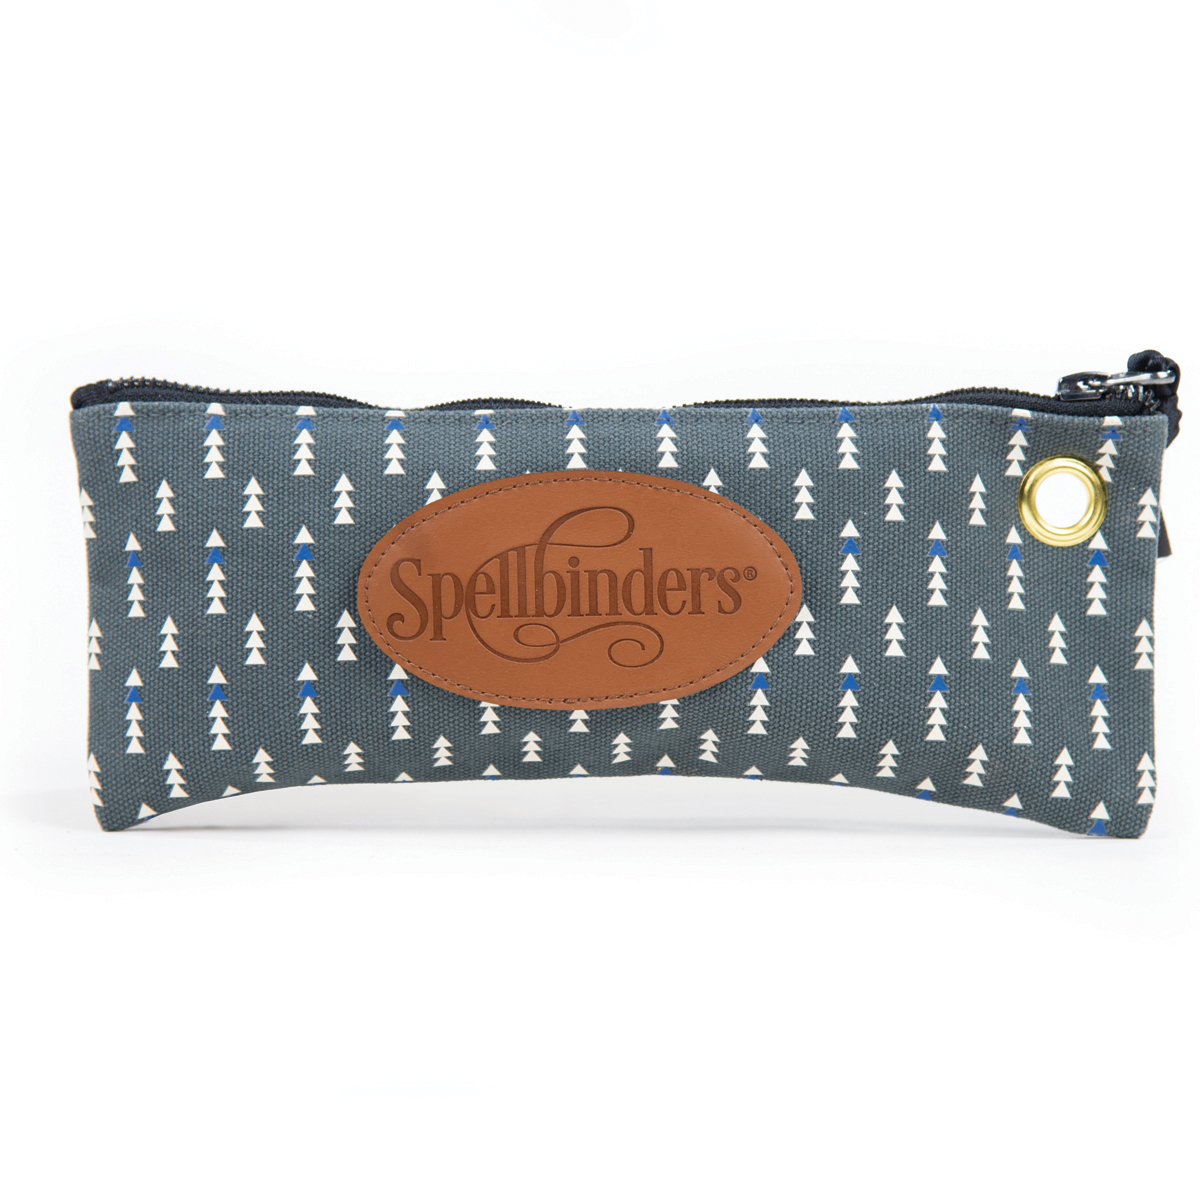 Spellbinders Zip Pouch-Small